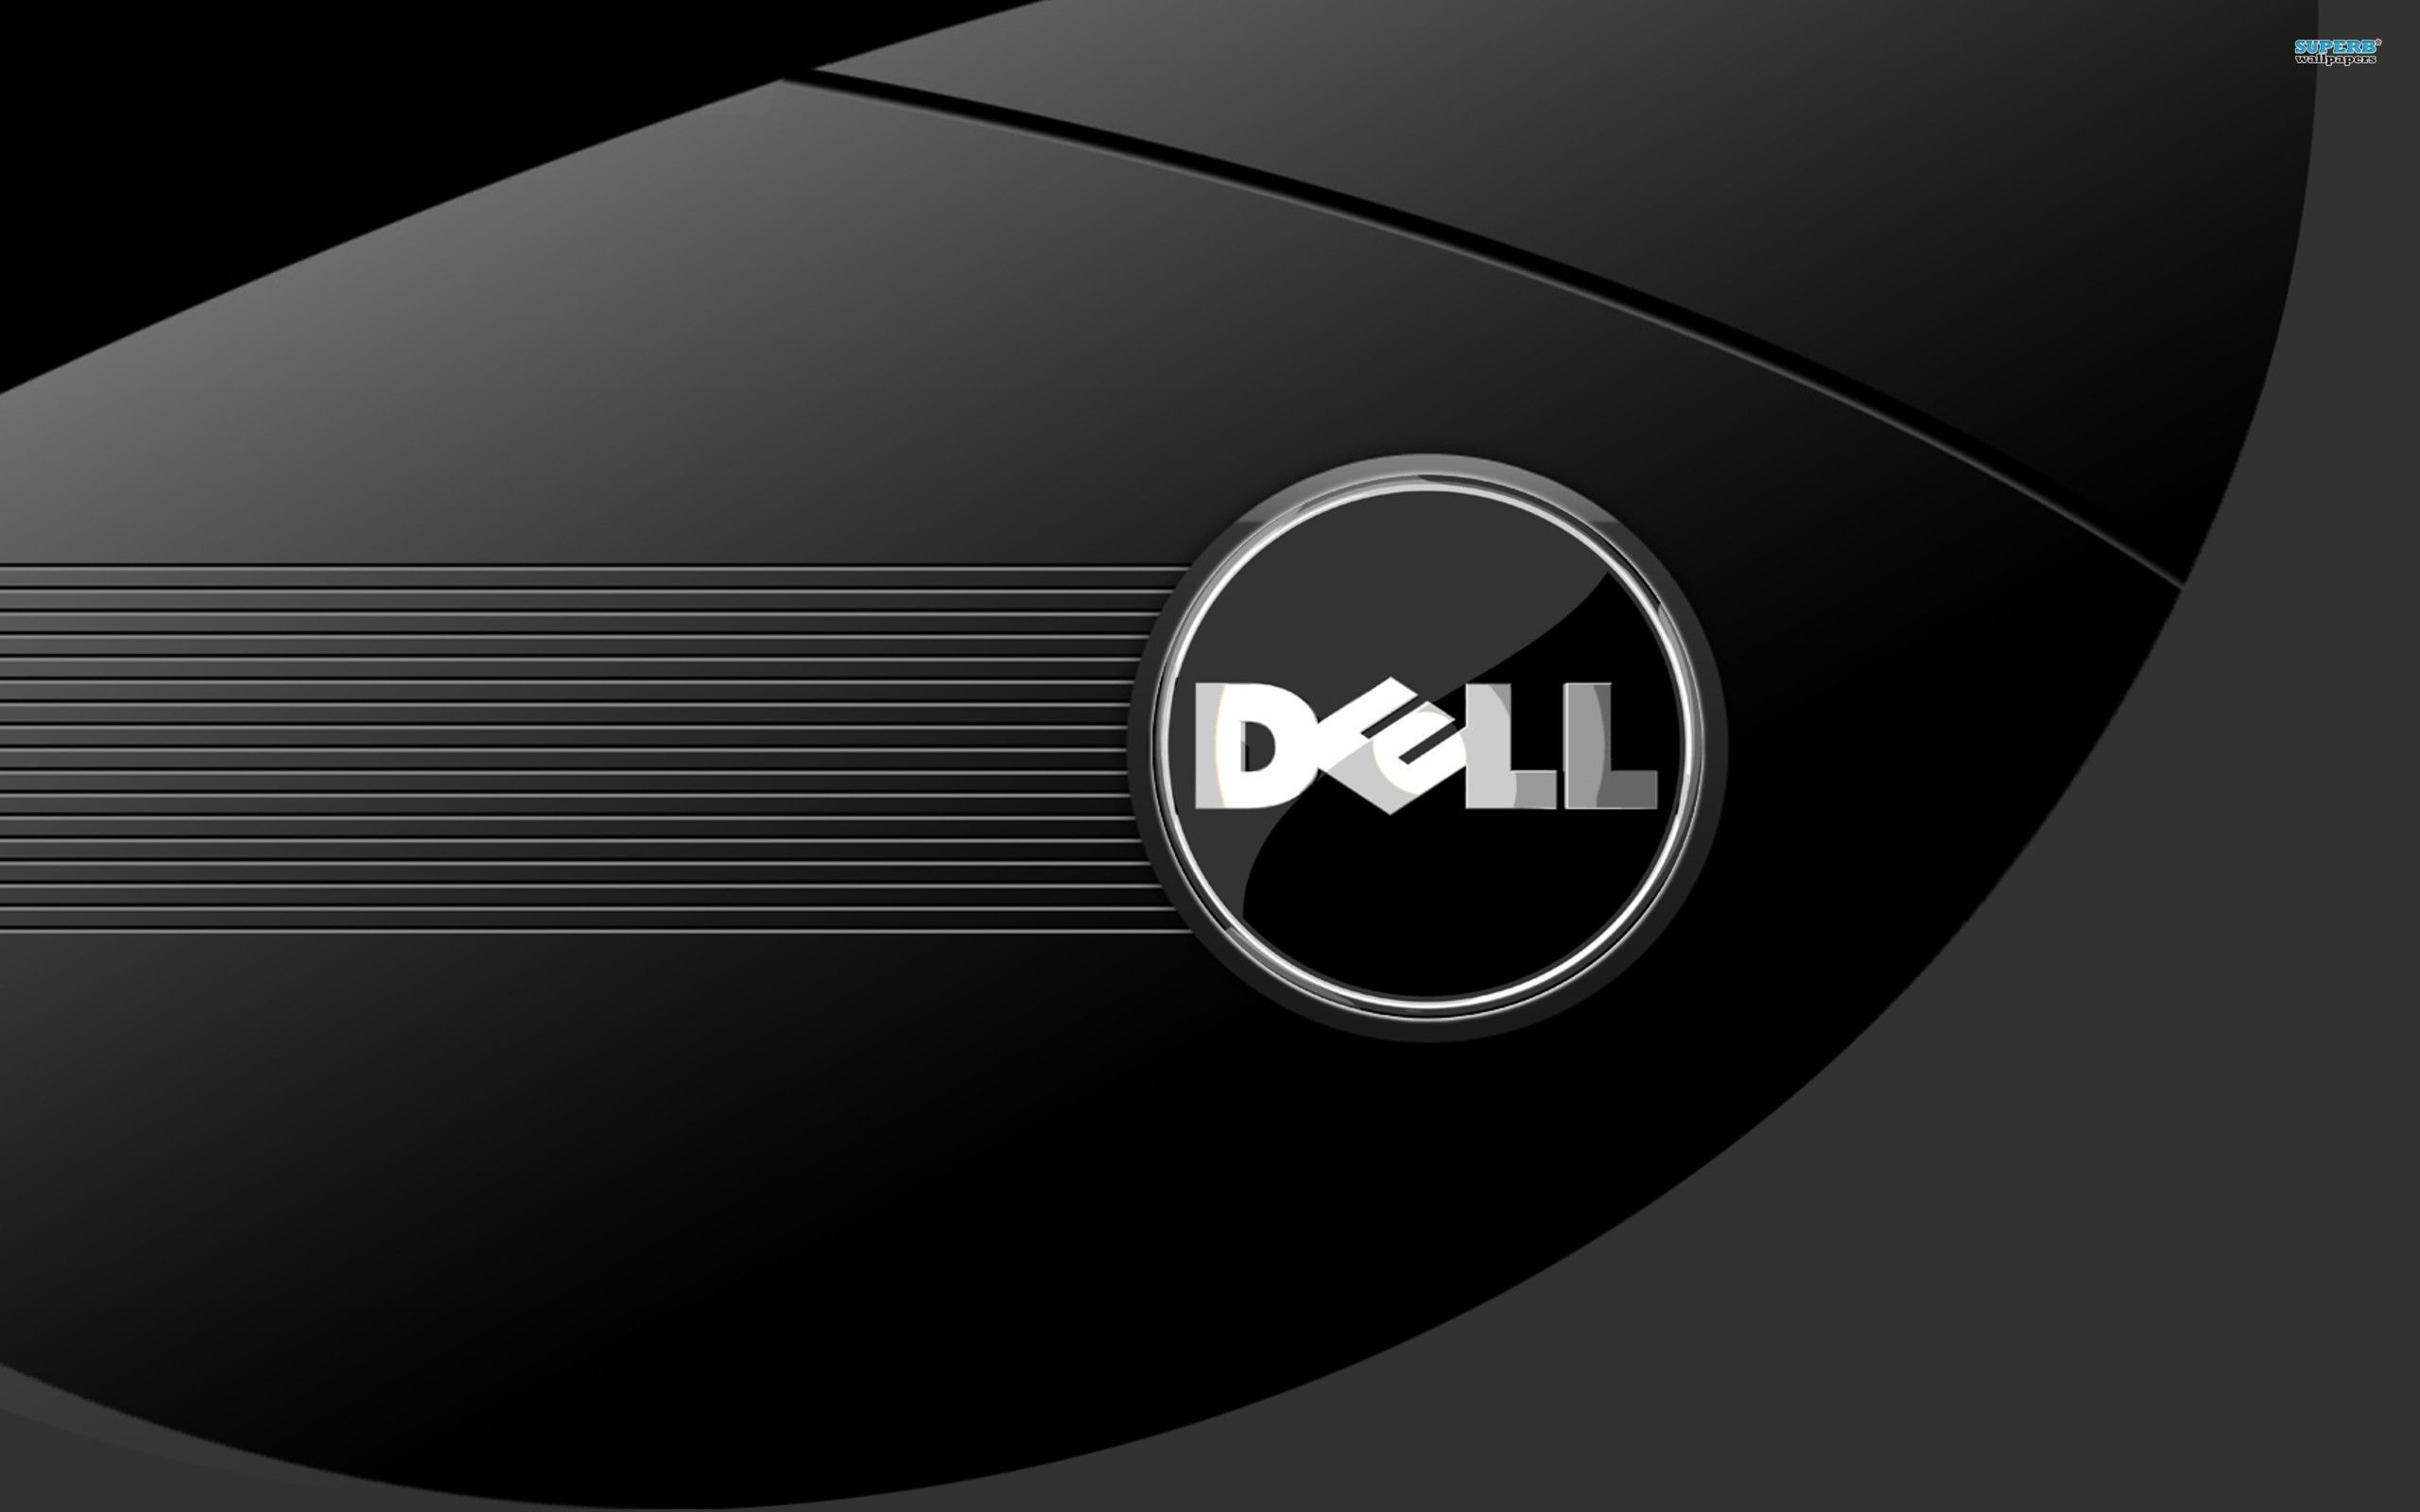 Dell XPS Wallpapers Wallpaper